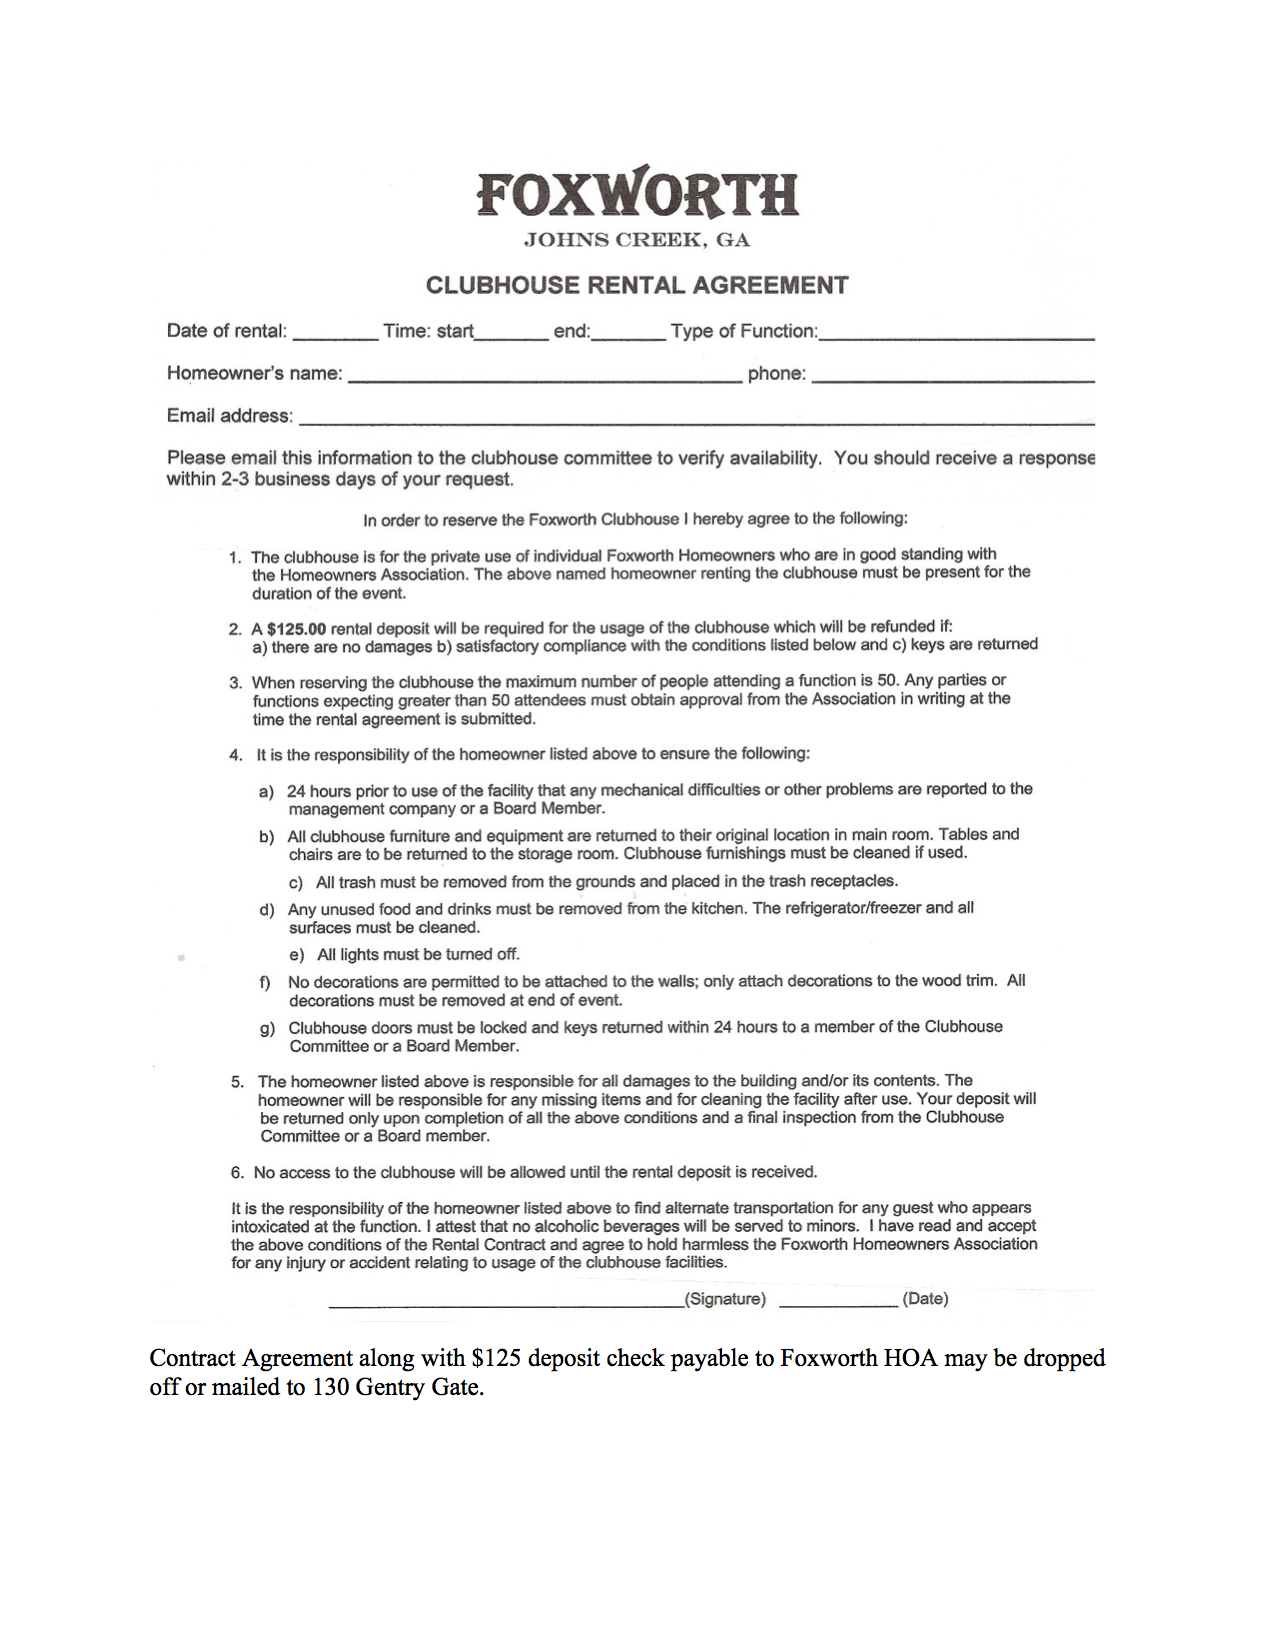 Clubhouse Rental Agreement Foxworth